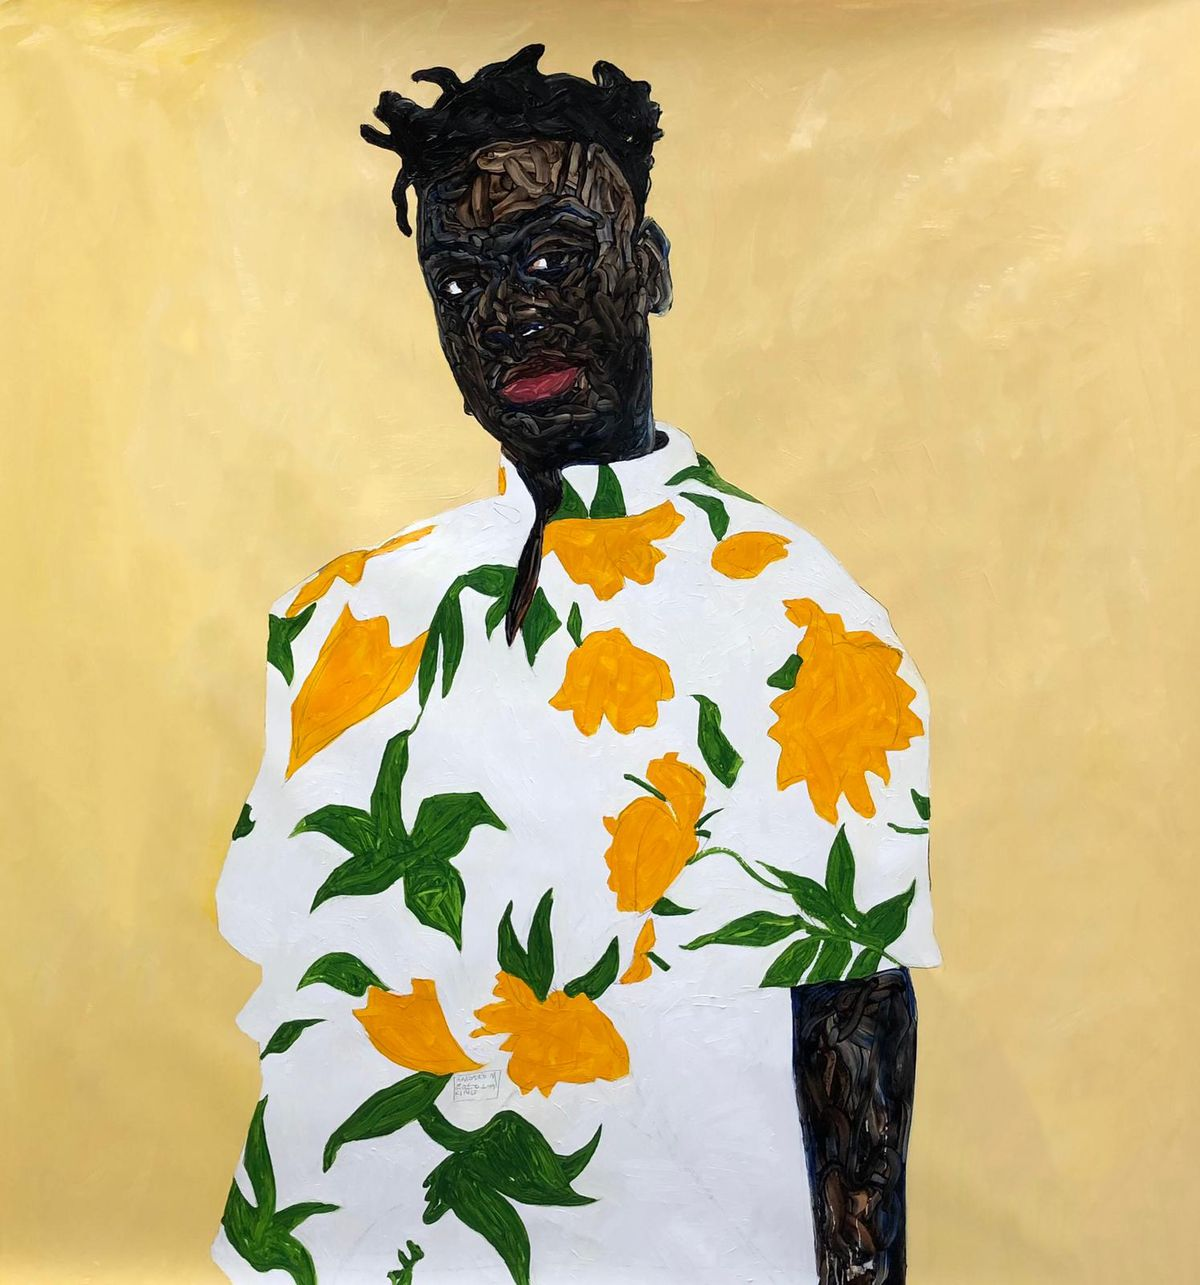 """Amoako Boafo's """"Sunflower Shirt"""" is among the art you will find at this weekend's Expo Chicago."""